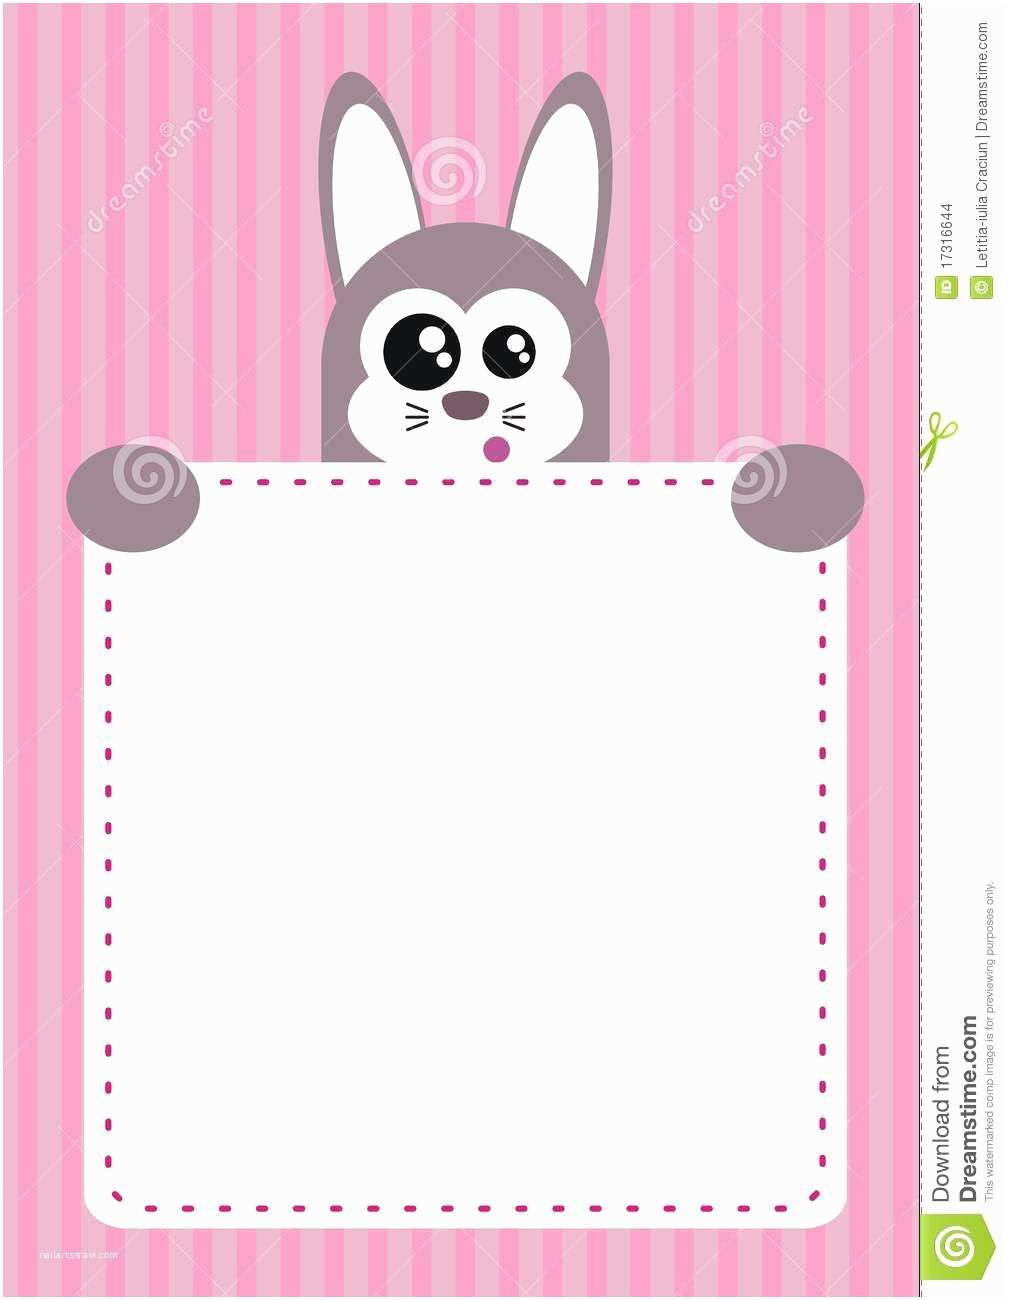 Cute Birthday Invitations Cute Bunny Children Invitation Party Stock Image